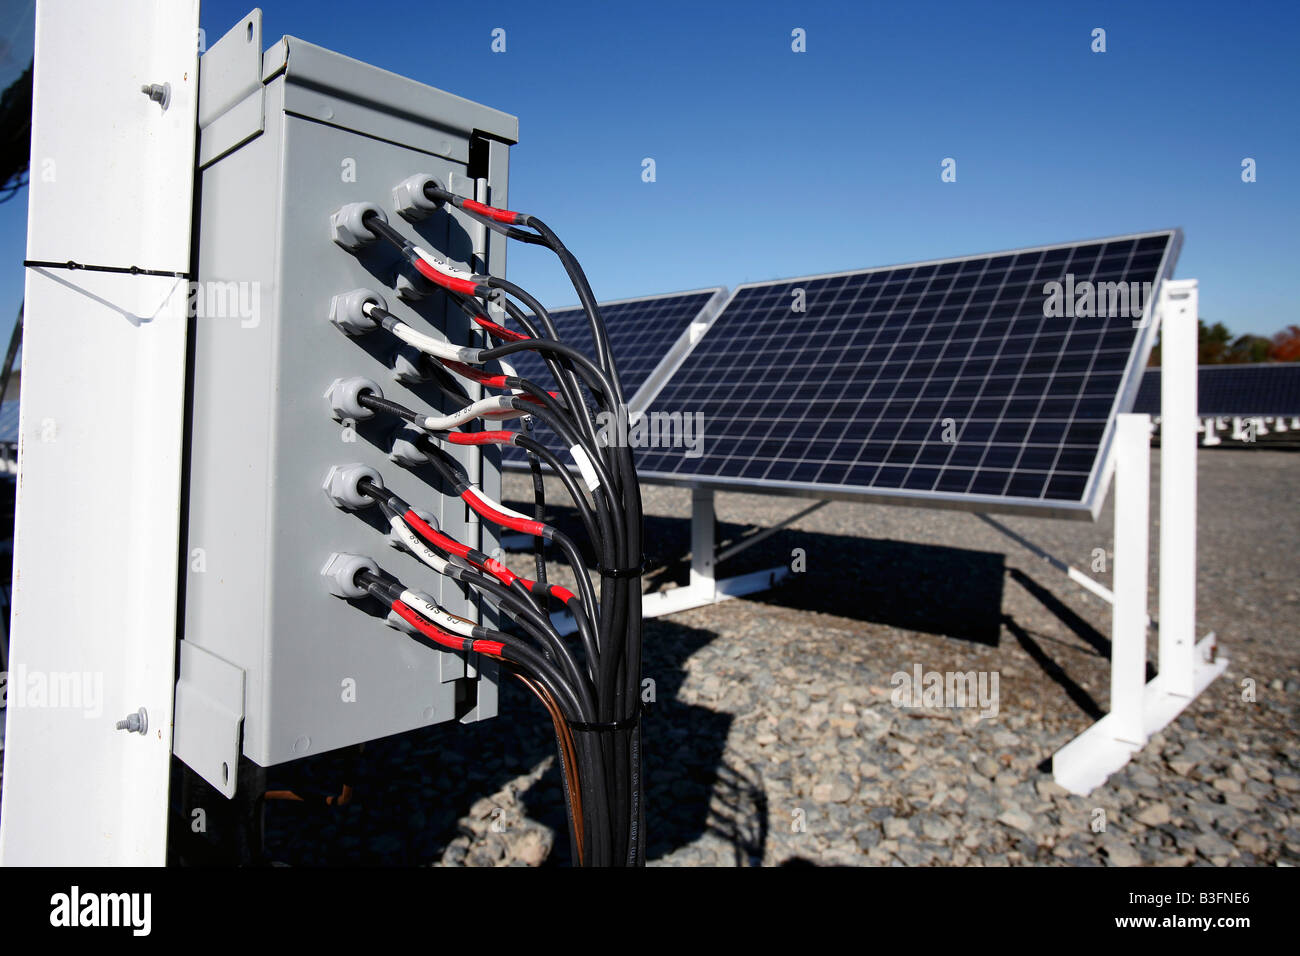 Wiring A Solar Panel Junction Box Wire Center To Battery Diagram Panels Explained Diagrams Rh Dmdelectro Co